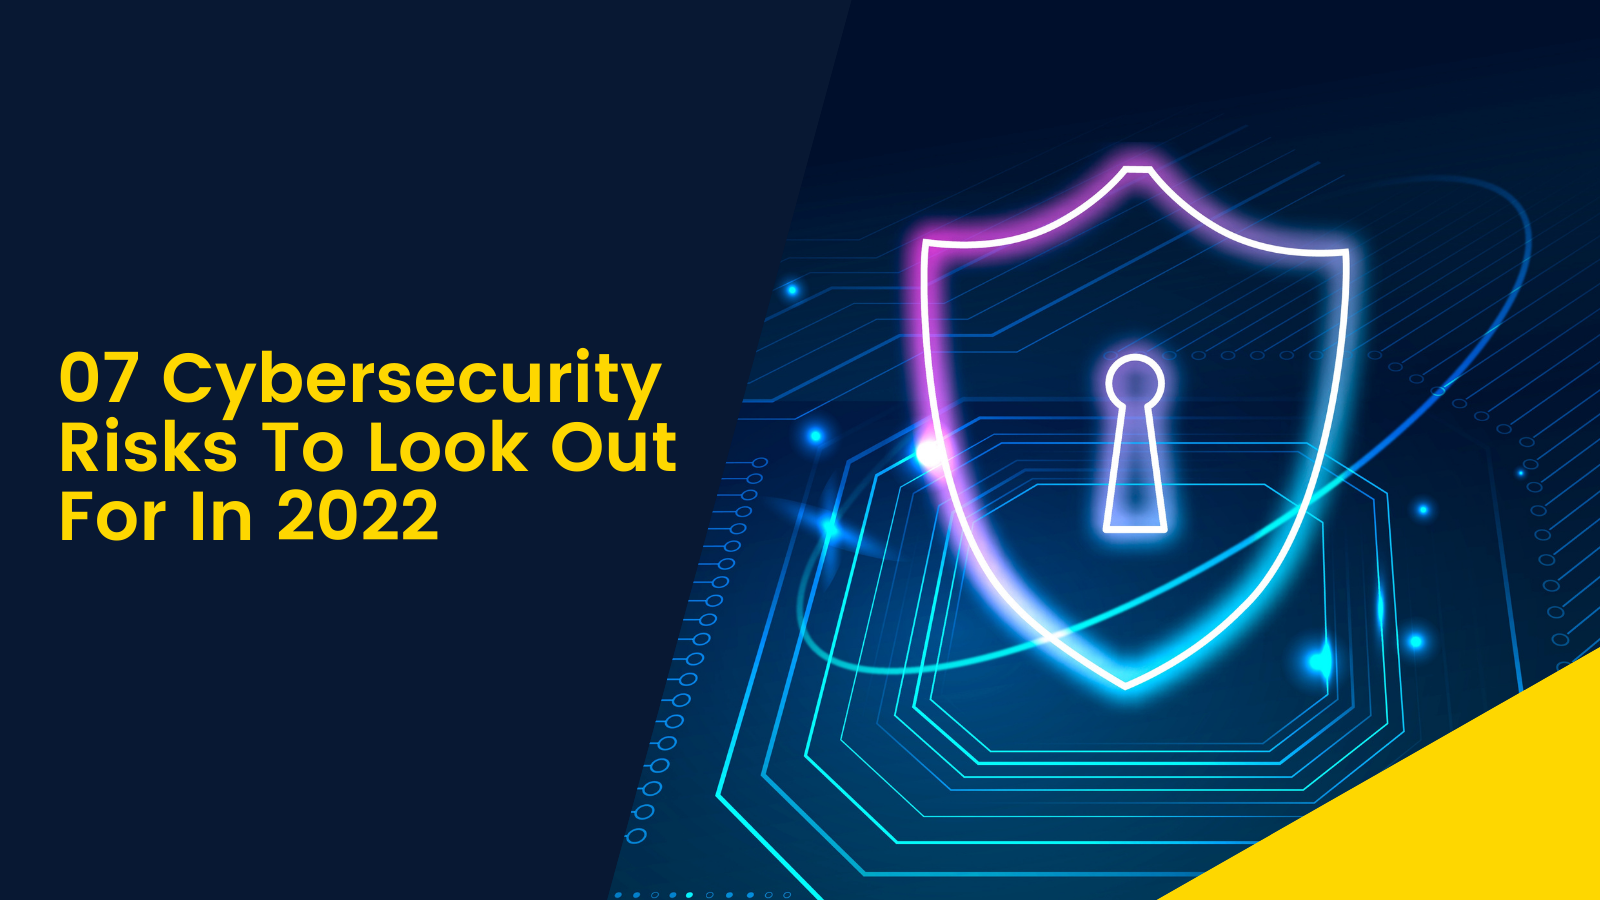 cybersecurity-risks-to-look-out-for-in-2022